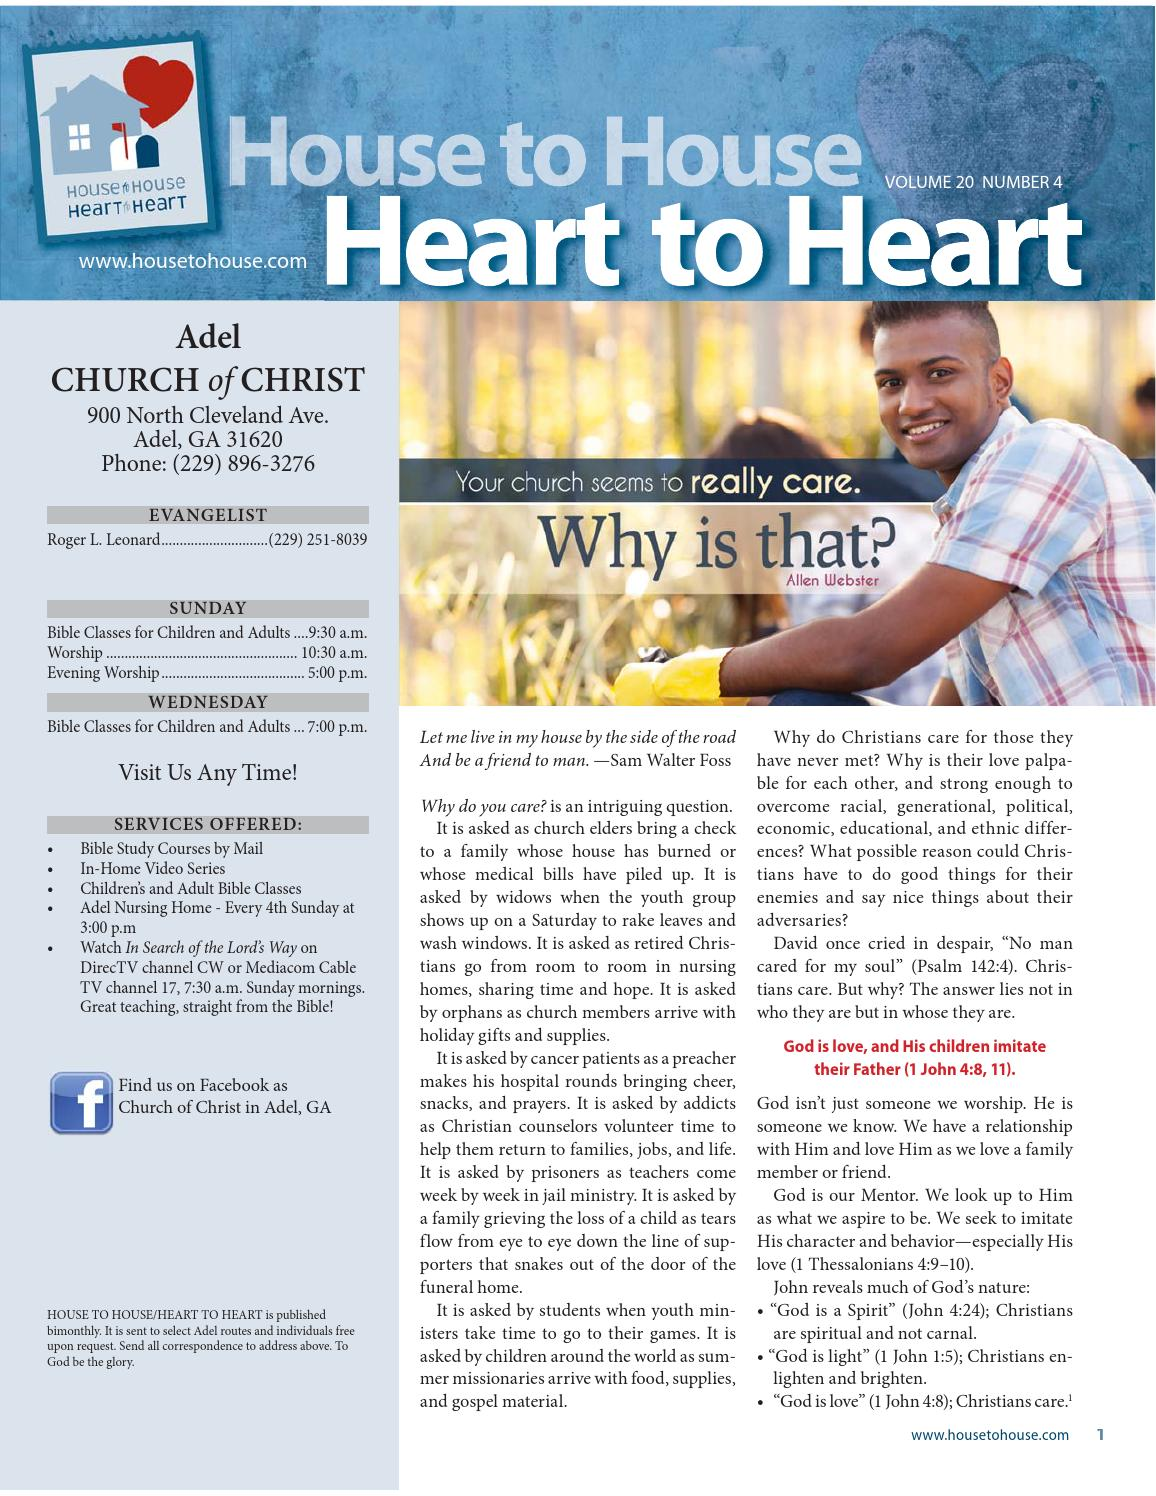 July - August 2015 House to House Heart to Heart - Adel church of